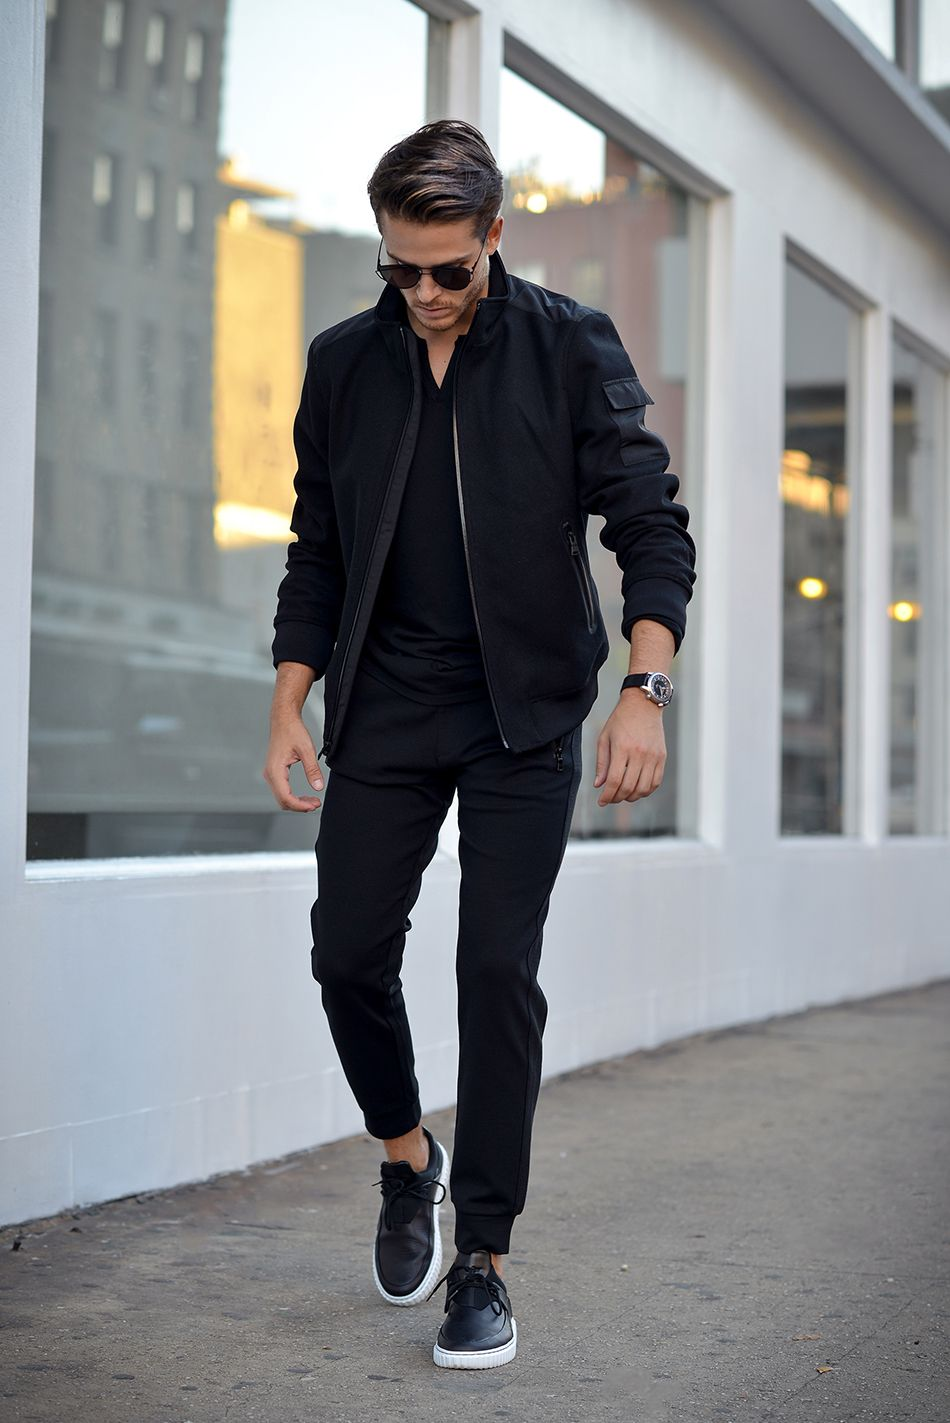 Black on Black | Menu0026#39;s Casual Outfit | Bomber Jacket | Shop Menswear at designerclothingfans.com ...